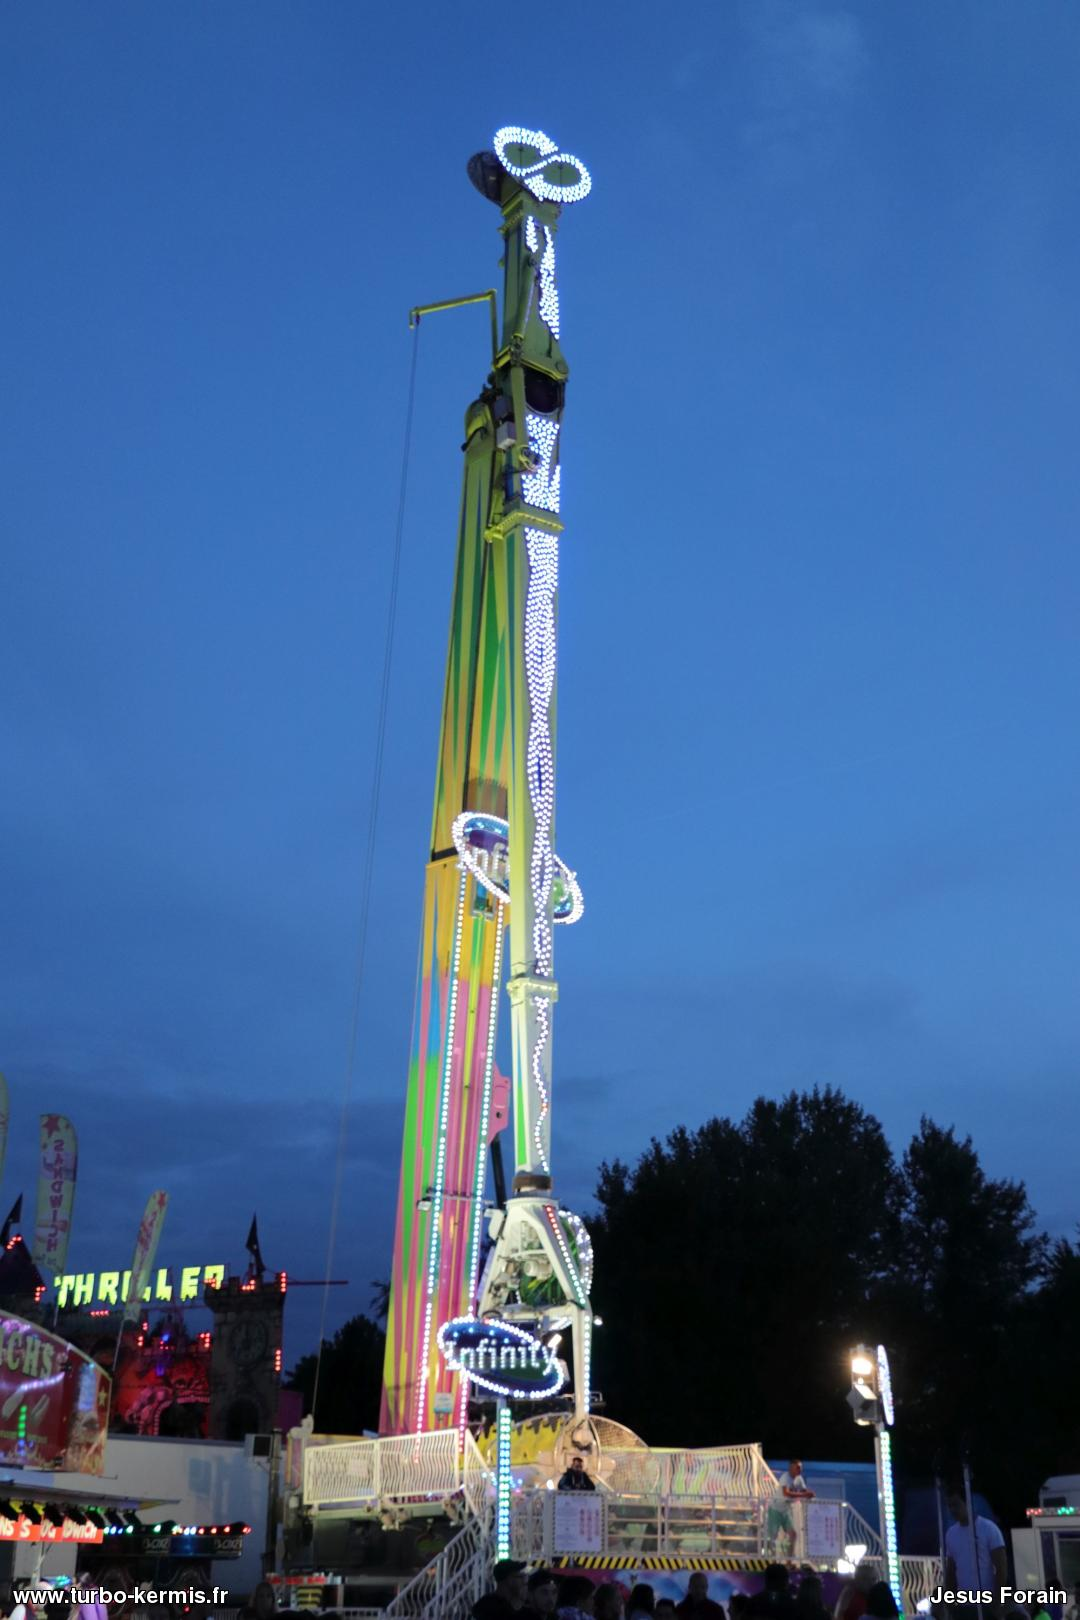 https://www.turbo-kermis.fr/gallery/img_turbo-kermis_75090.jpg